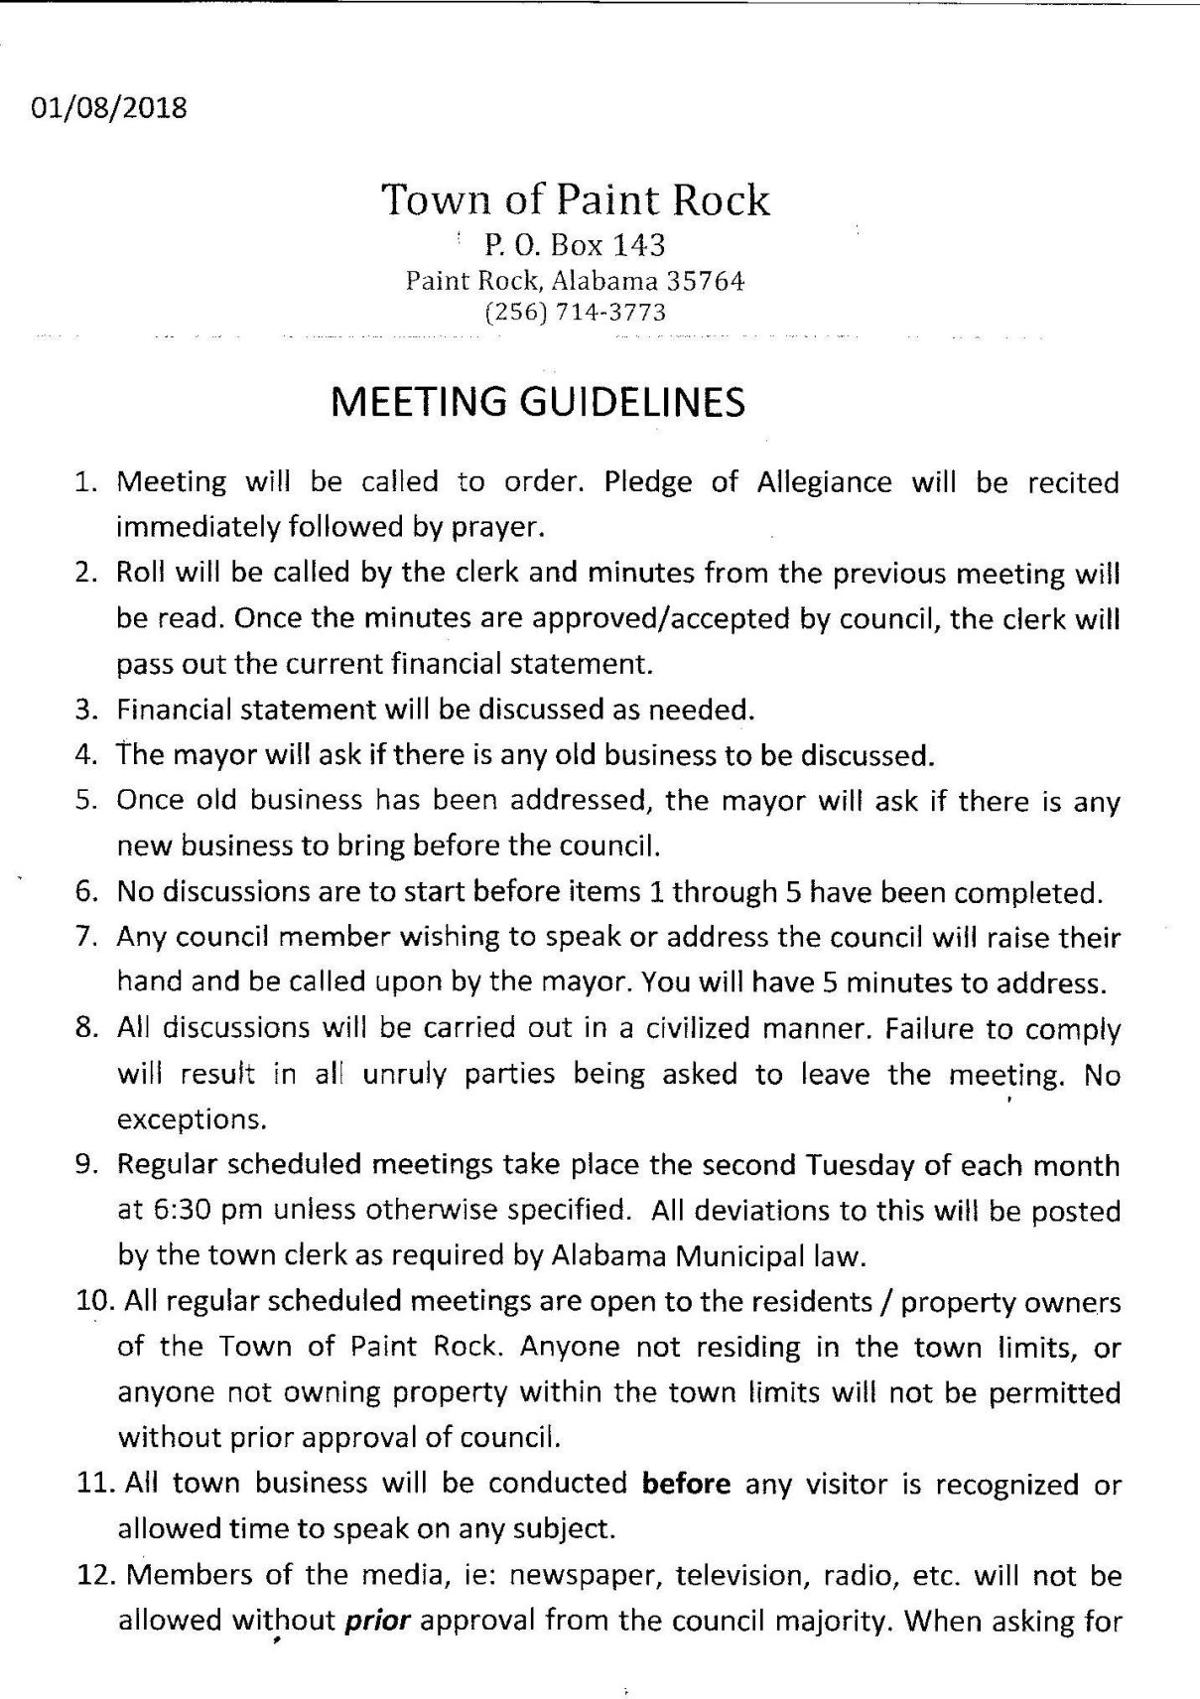 Town of Paint Rock Meeting Guidelines